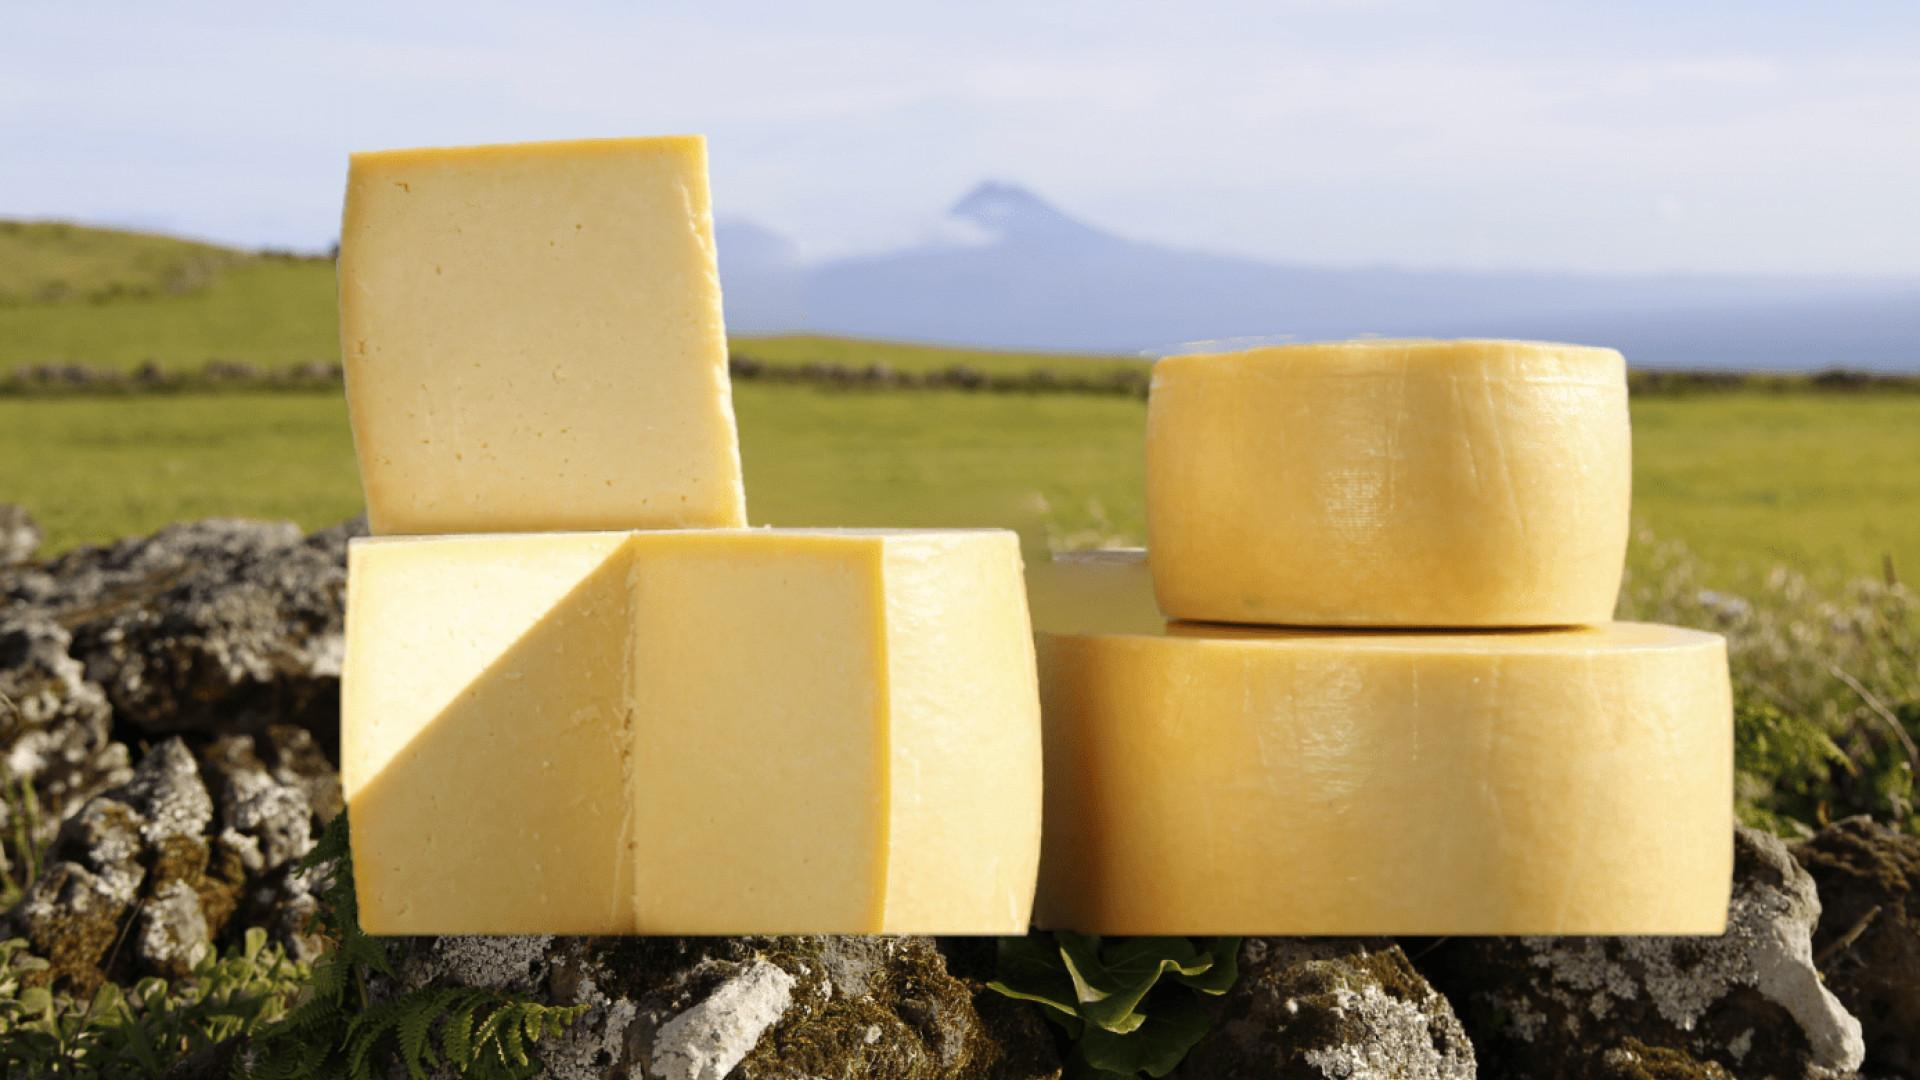 Azorean cheese from Portugal's Azores islands | An assortment of Azorean cheese